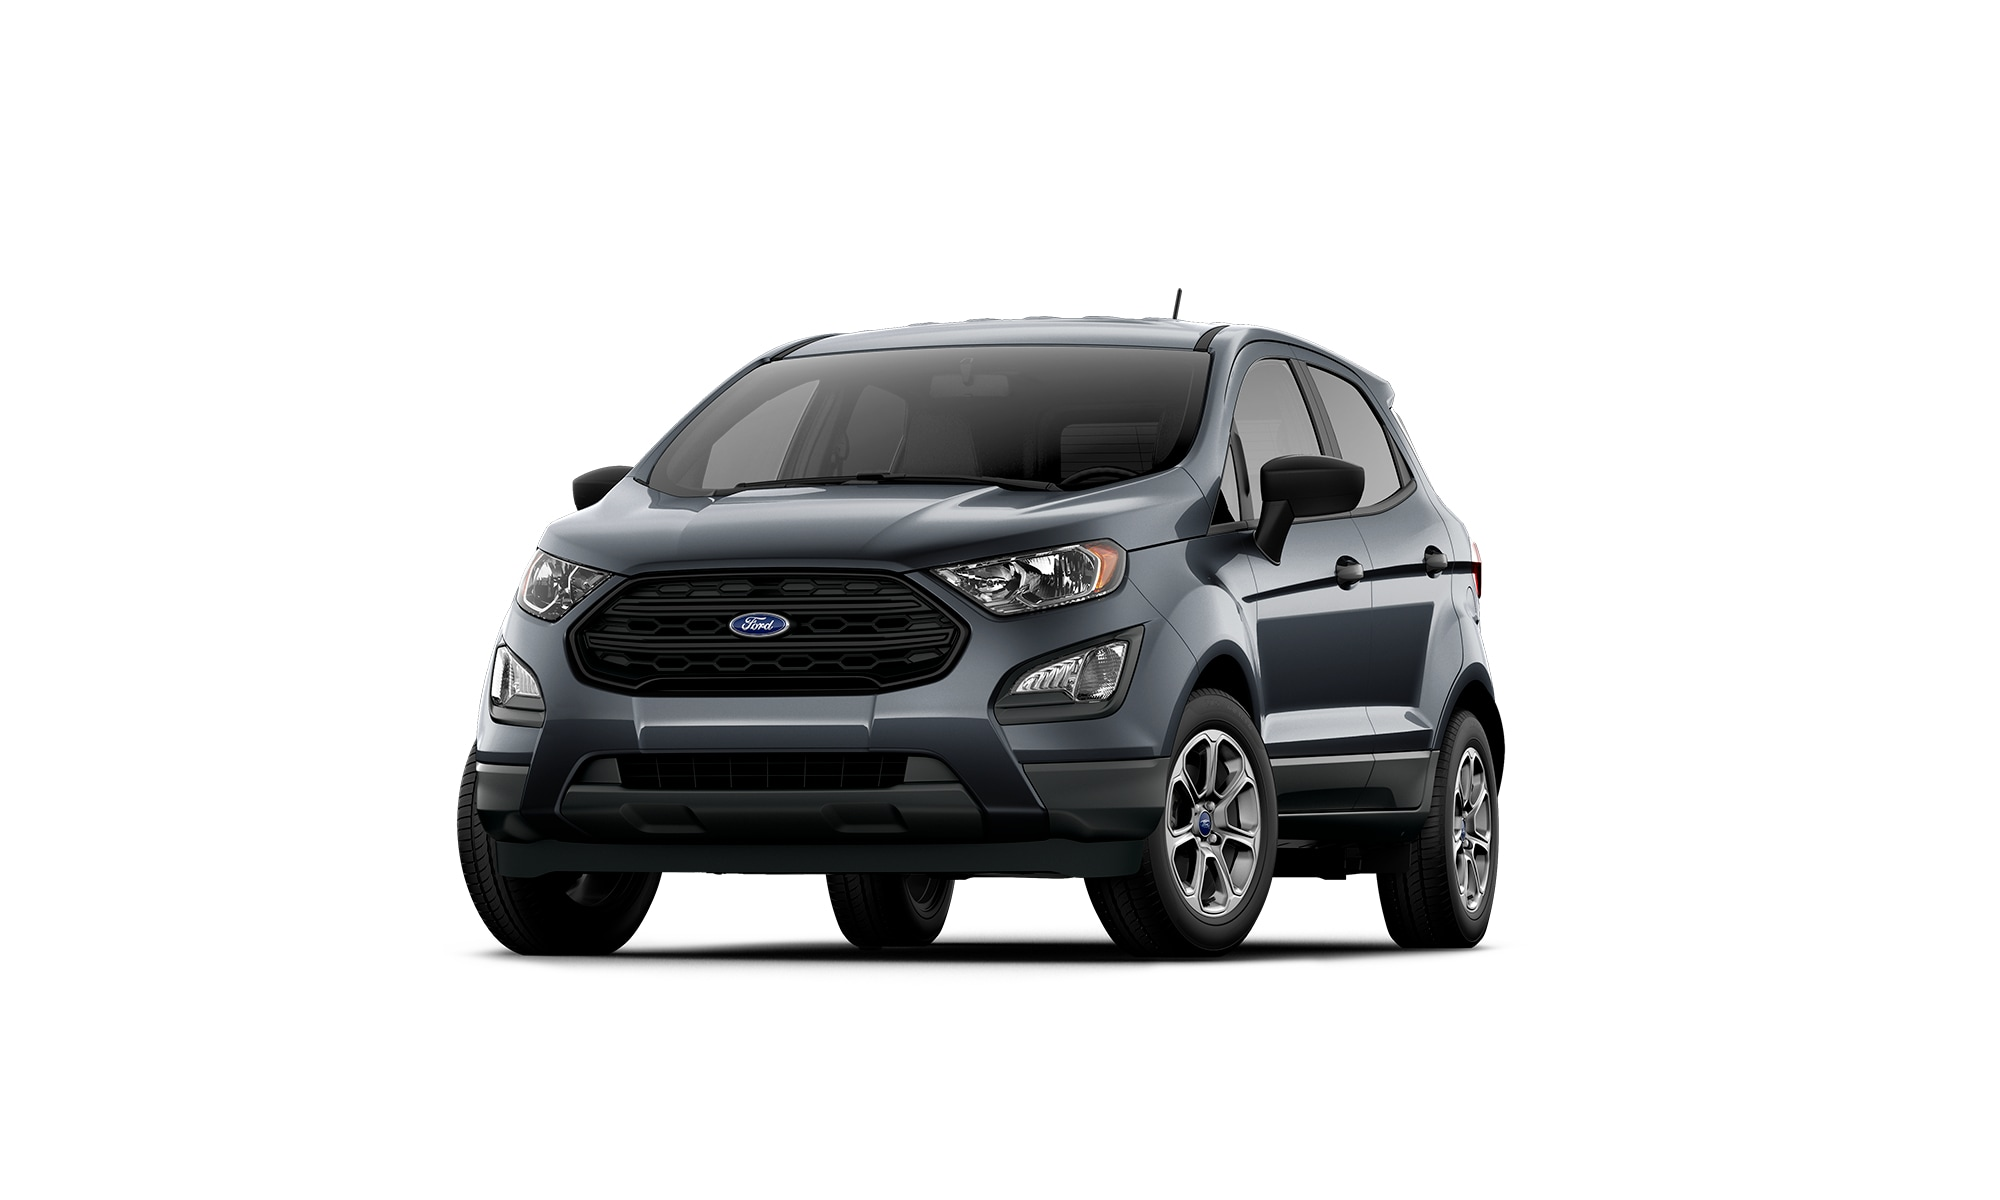 Matthews Paoli Ford >> Paoli Ford Blog | The Latest Auto News & Information For Paoli Customers